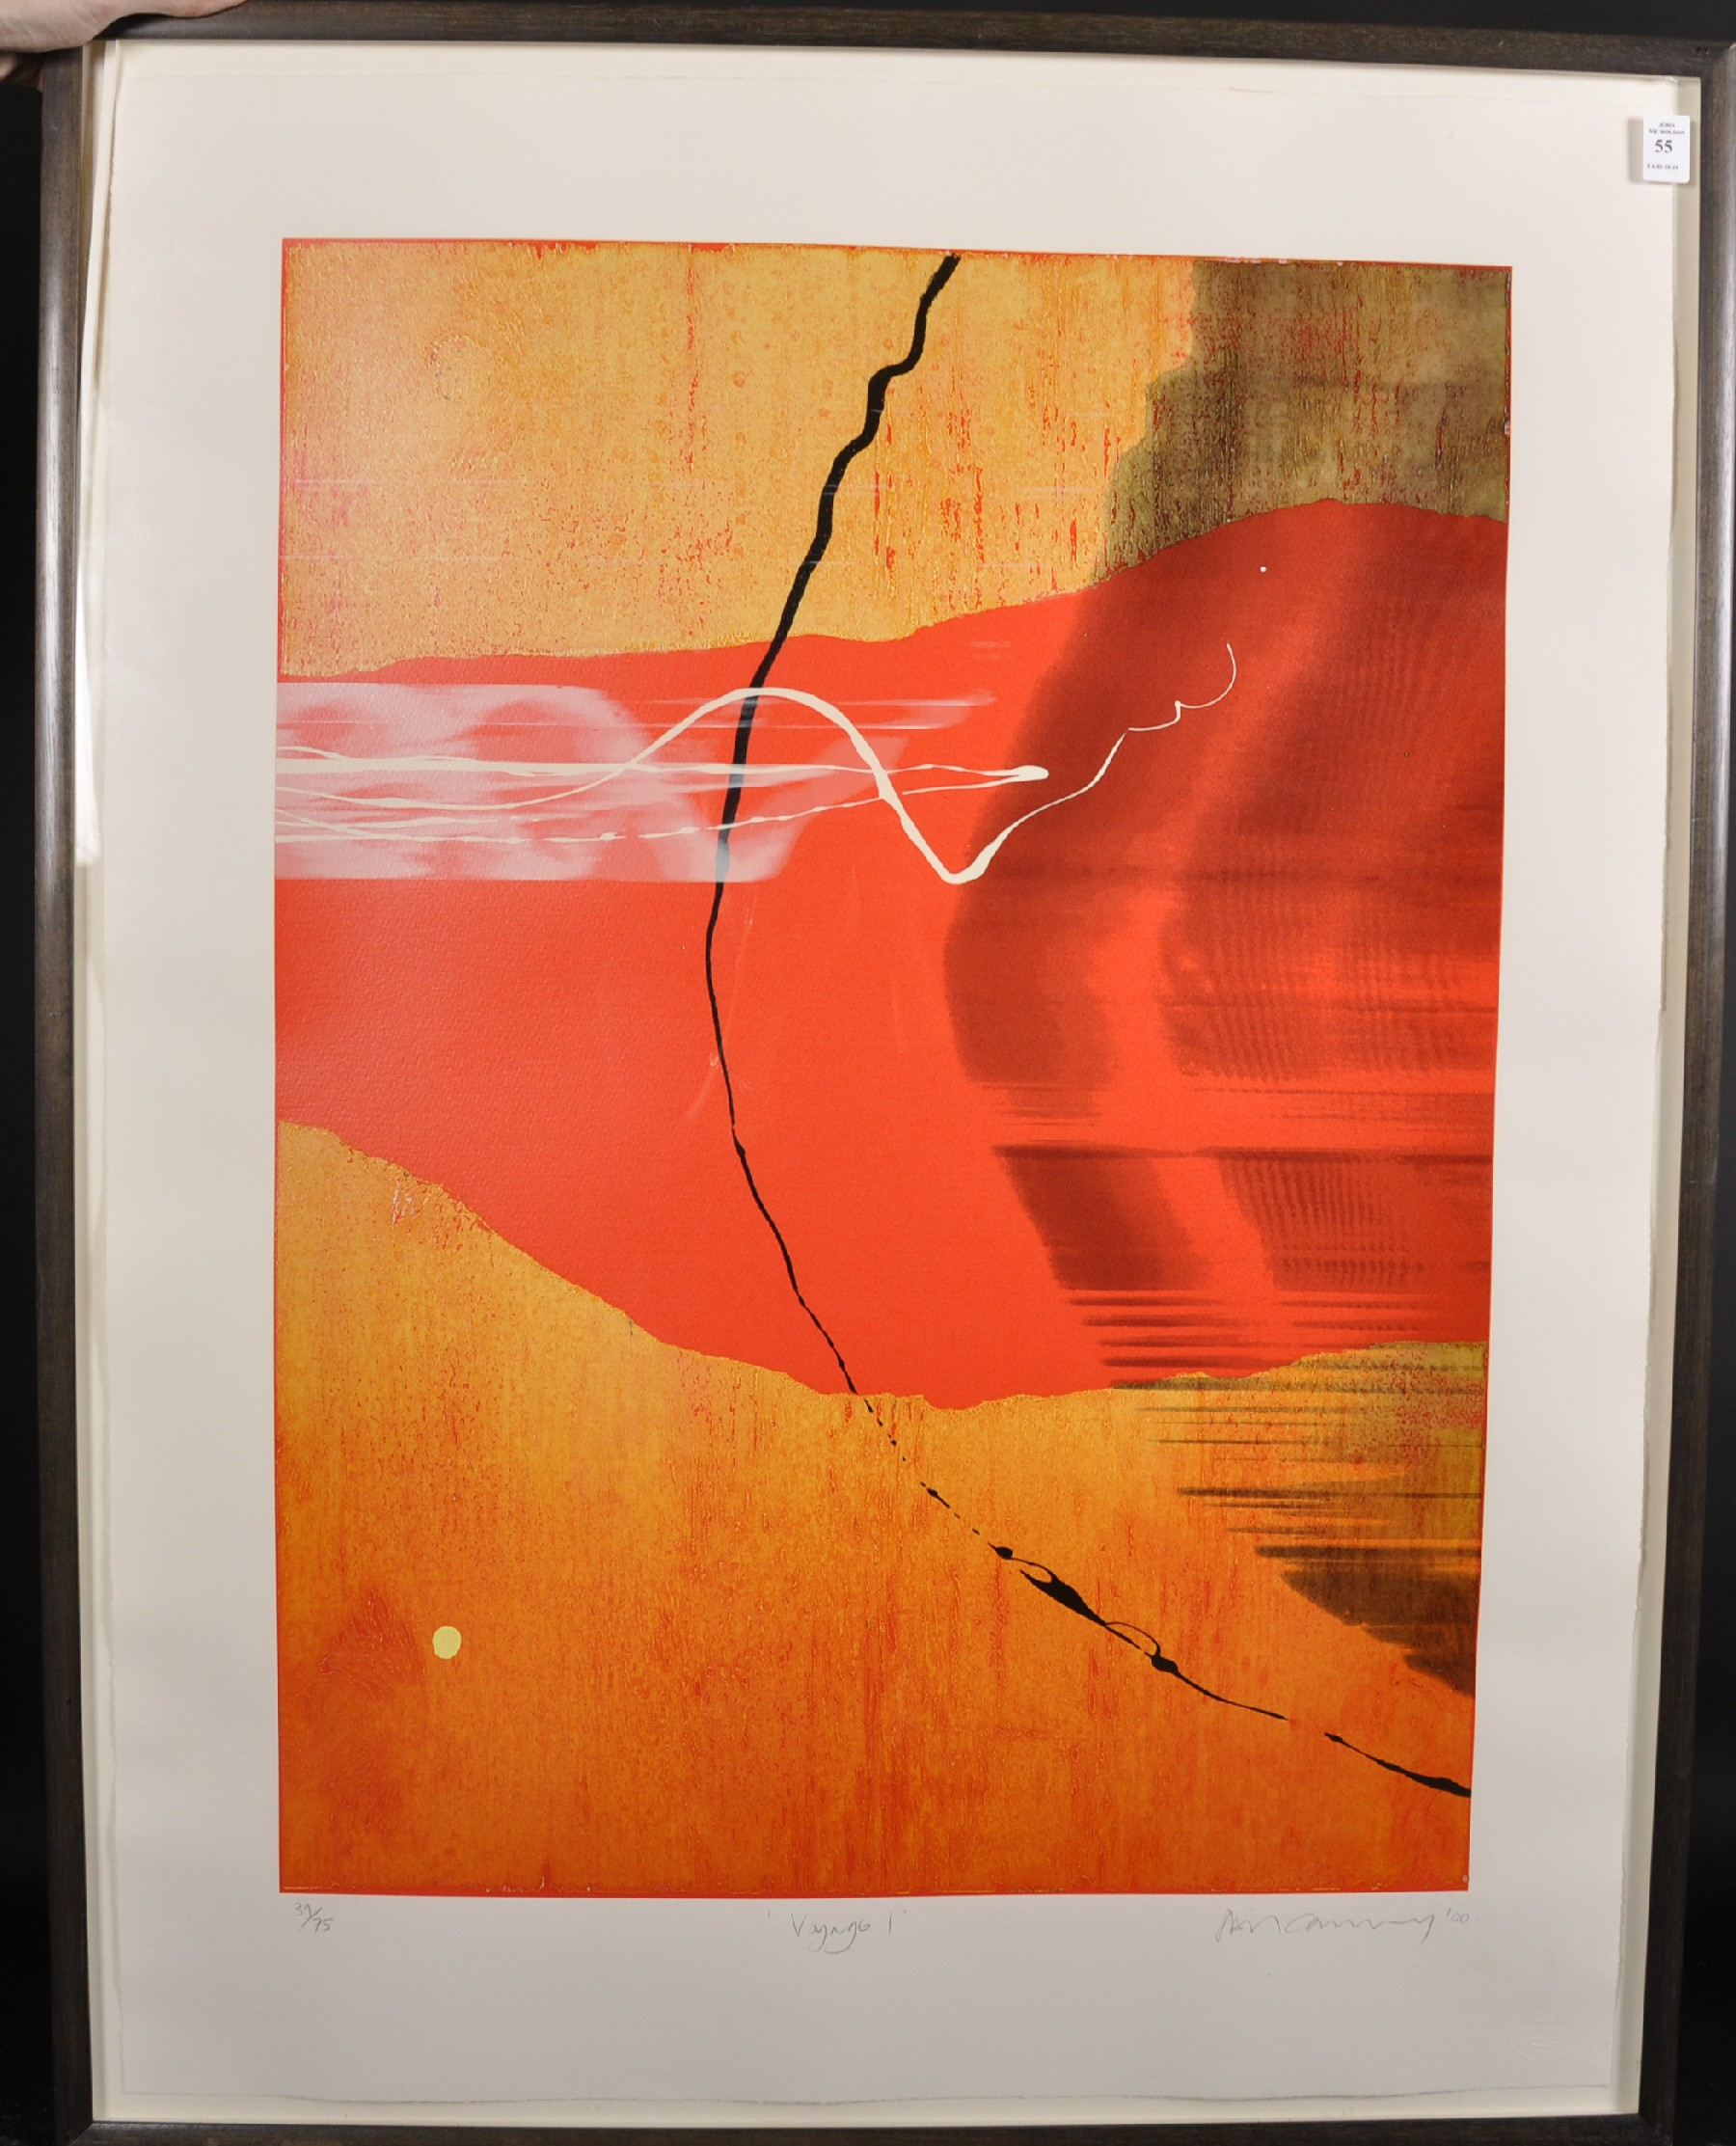 """Neil Canning (1960- ) British. """"Voyage I"""", Screenprint, Signed, Inscribed, Dated '00, and Numbered - Image 2 of 5"""